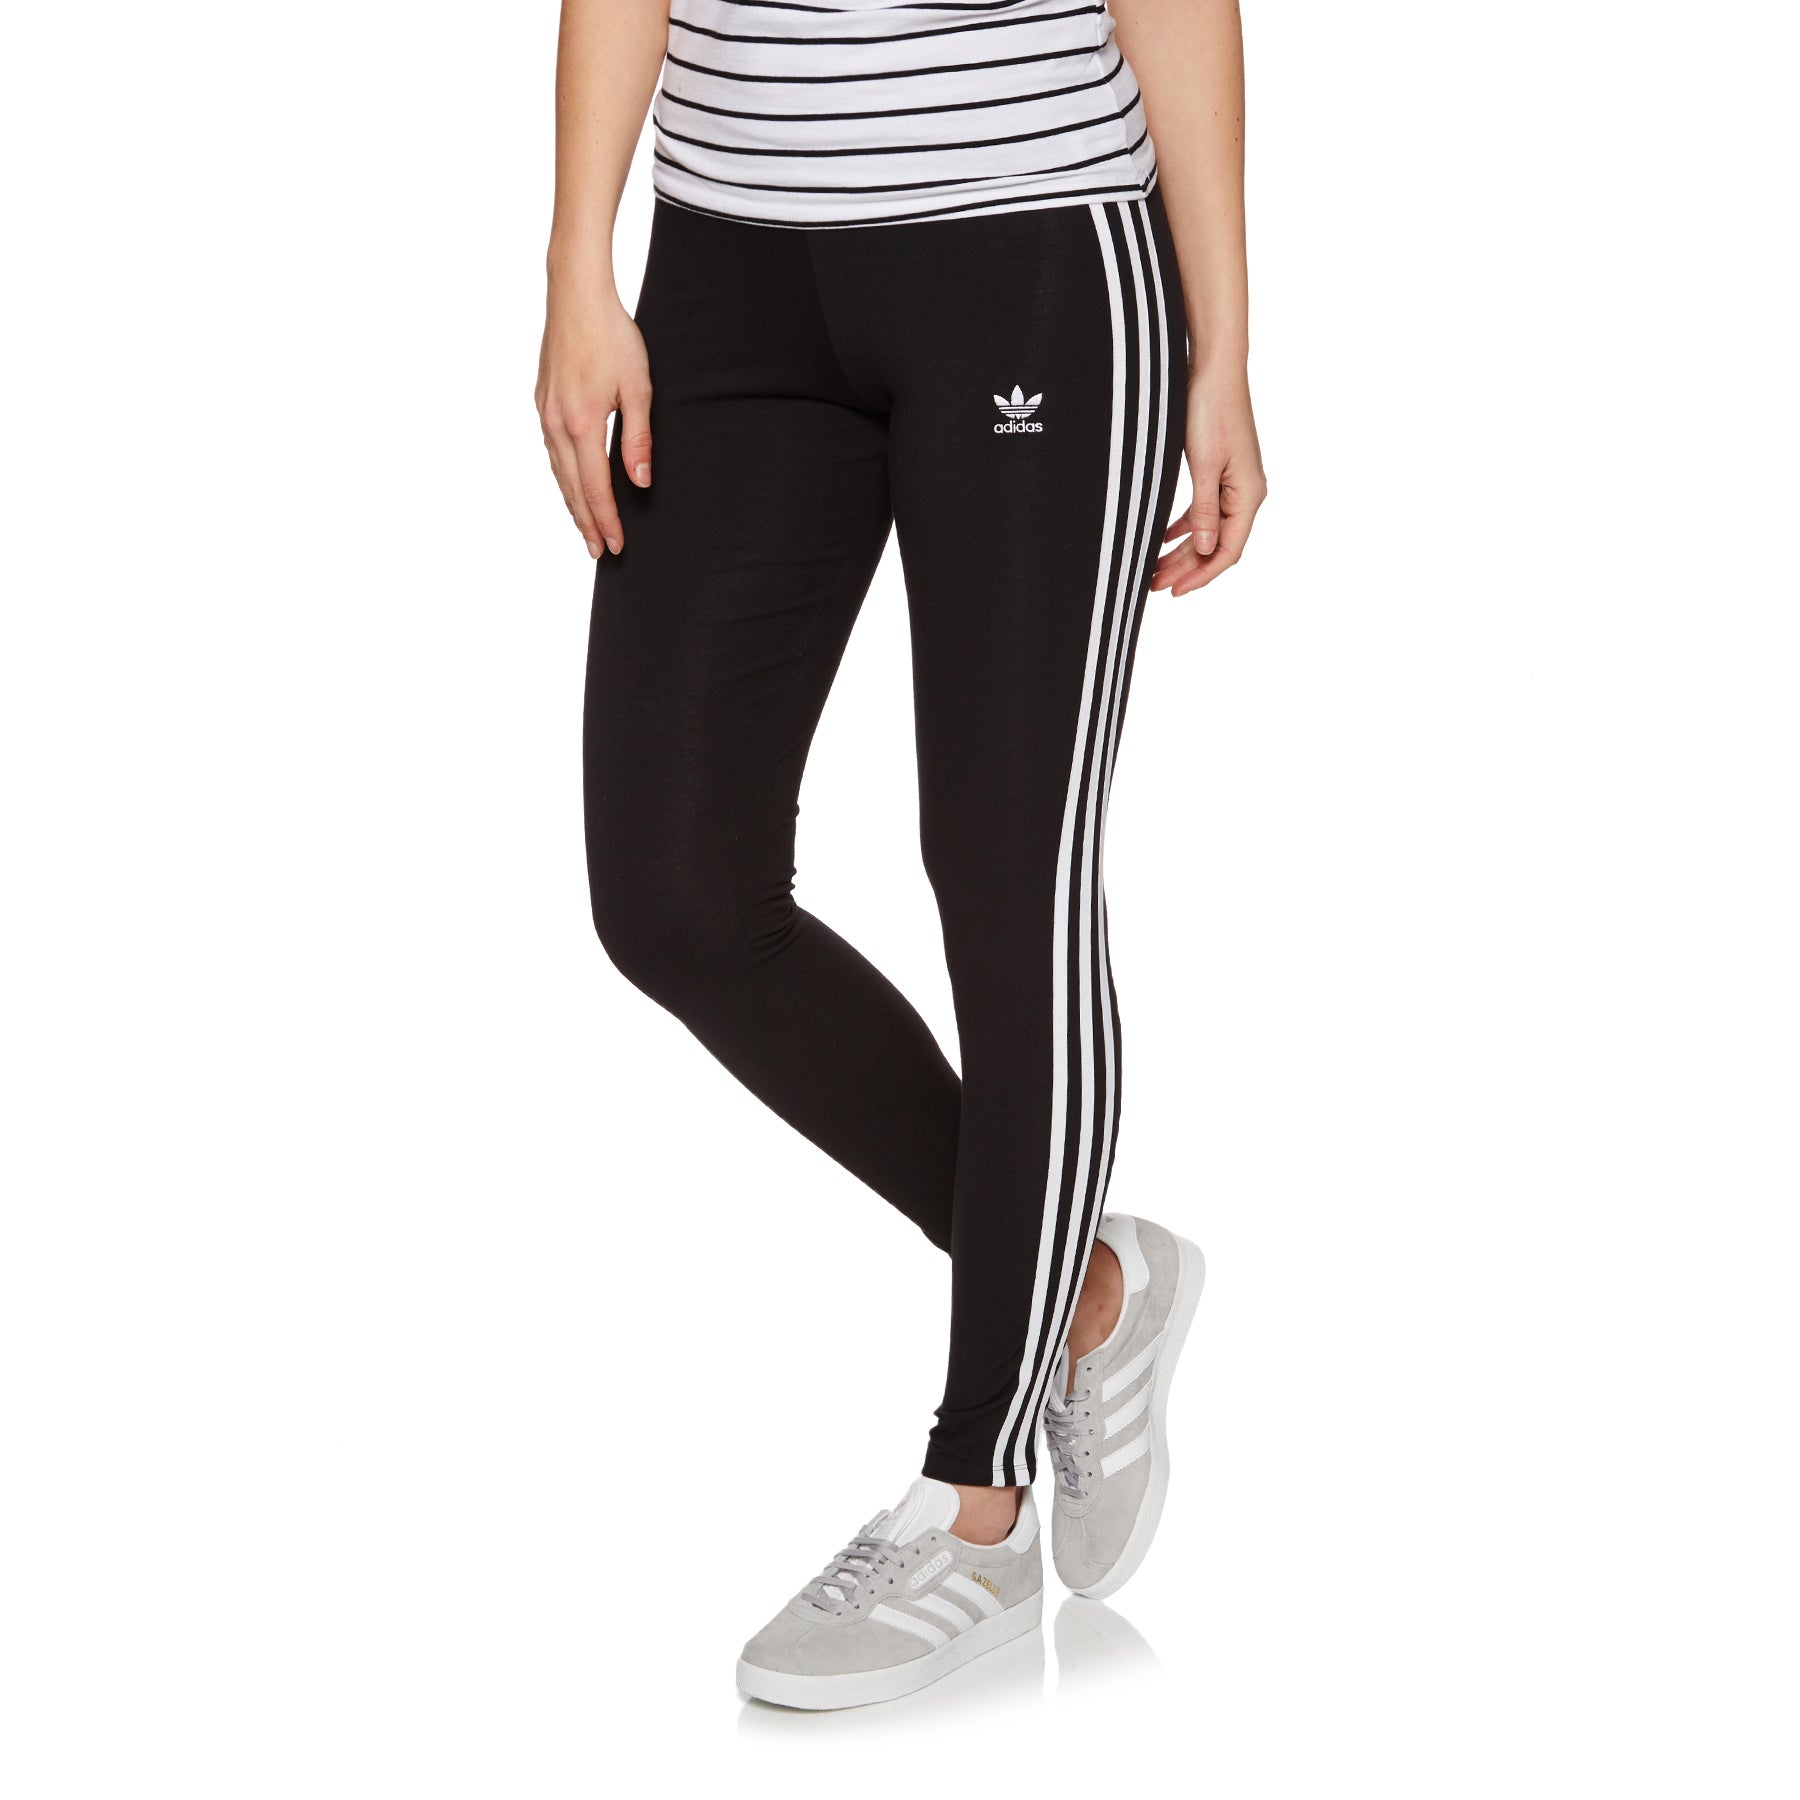 Adidas Originals 3 Stripe Womens Leggings - Black